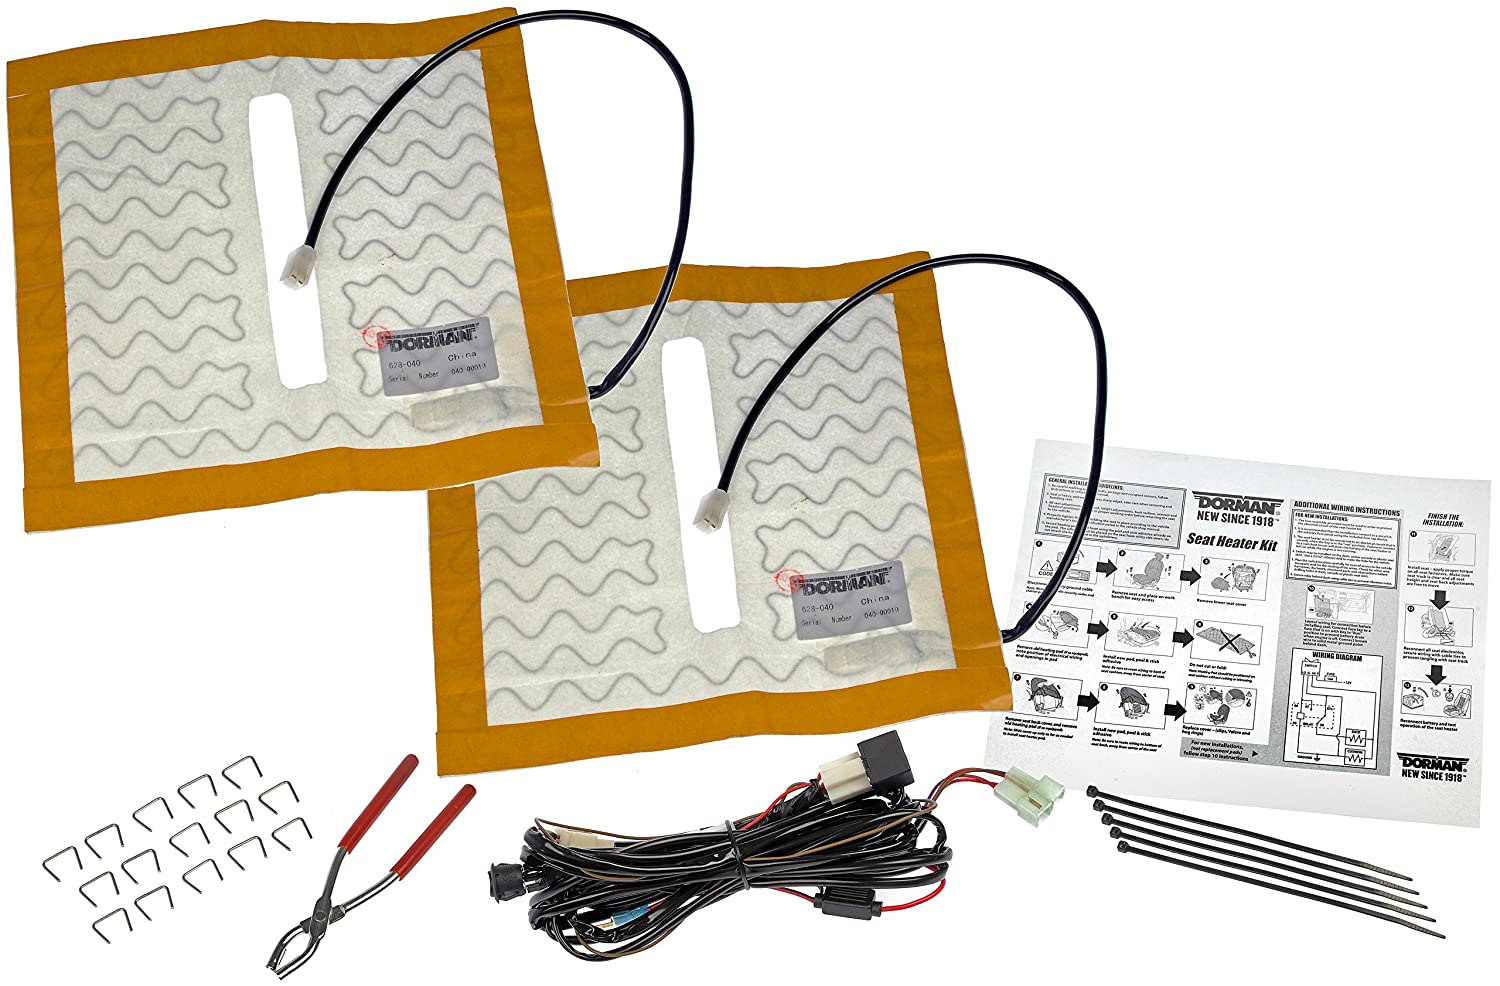 Dorman 628 040 Universal Seat Heater Kit Automotive 2005 Silverado Heated Wiring Diagram